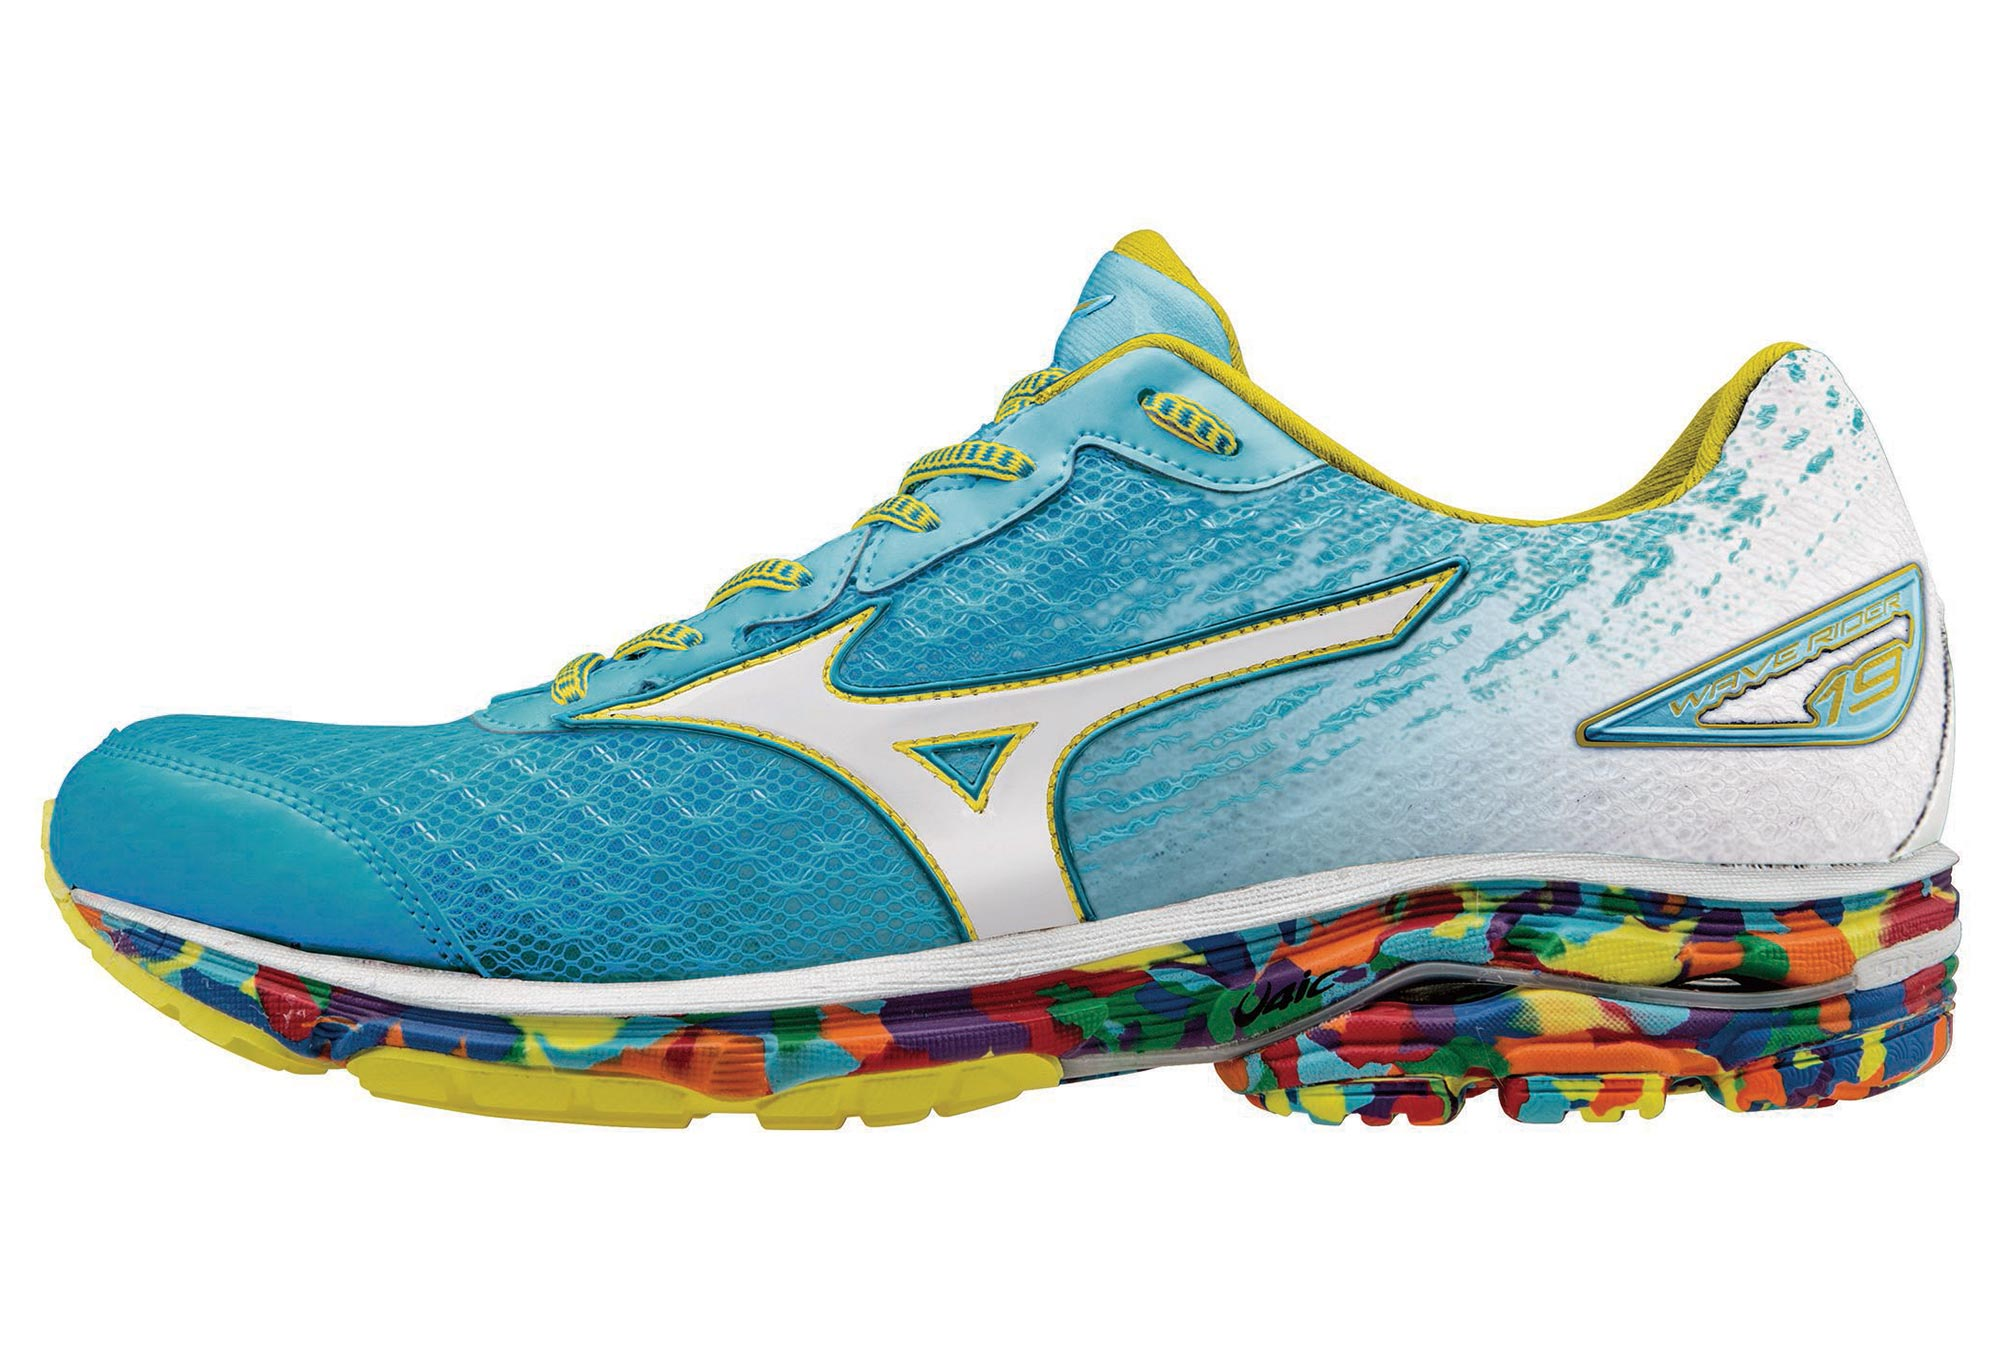 newest cdf73 91c80 MIZUNO Shoes WAVE RIDER 19 OSAKA Blue White Women